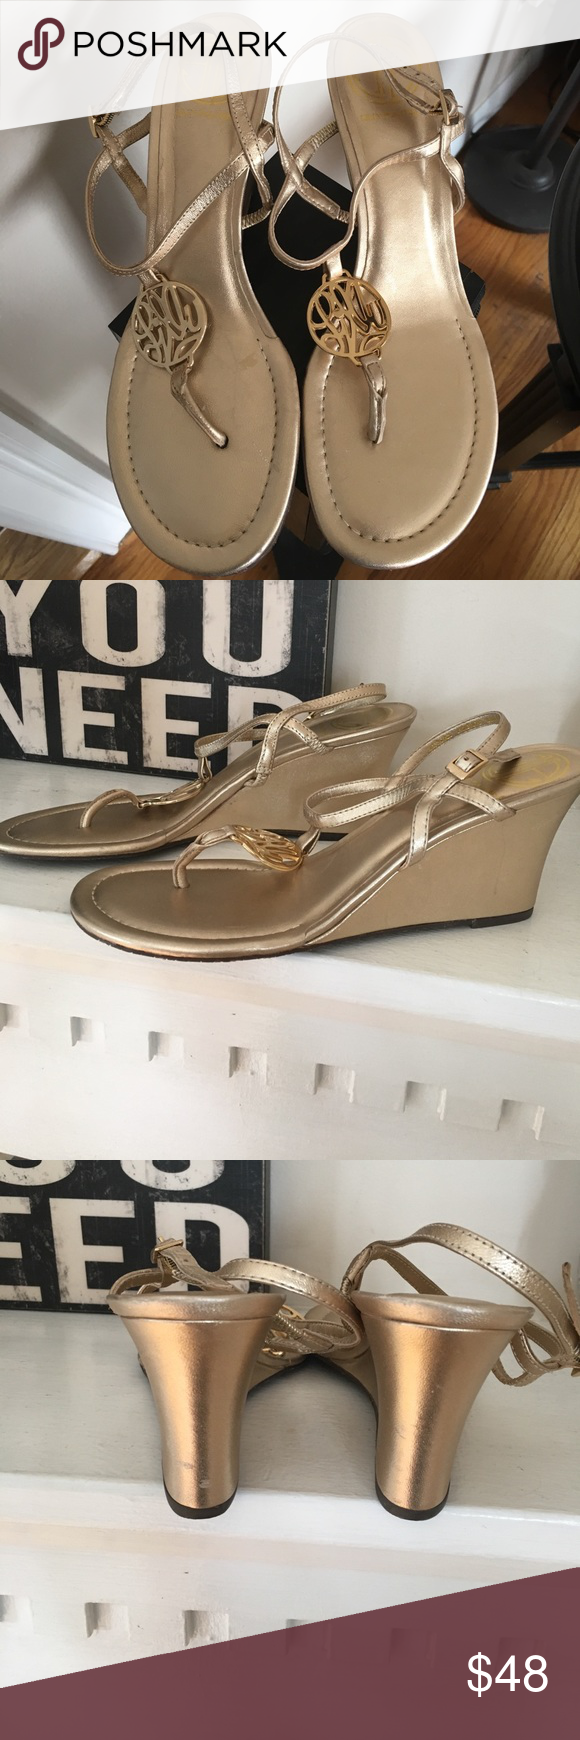 """Lilly Pulitzer gold wedge sandal! Gold Lilly wedge sandal with gold Lilly emblem on the from super comfy wedge height is 3"""" Lilly Pulitzer Shoes Wedges"""